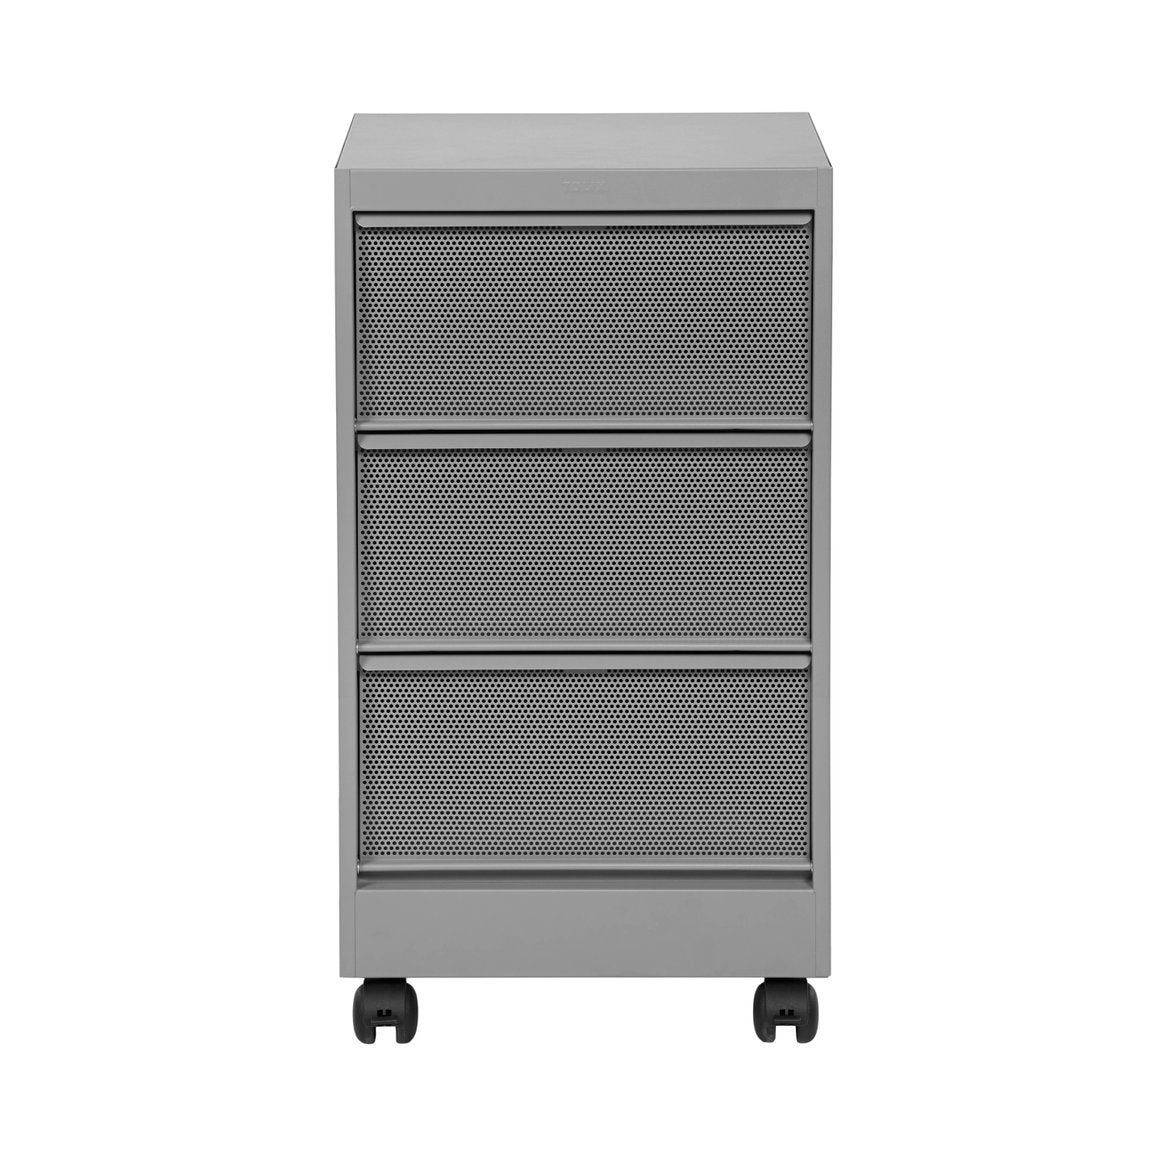 TOLIX - CC3 Cabinet Perforated - Cabinet